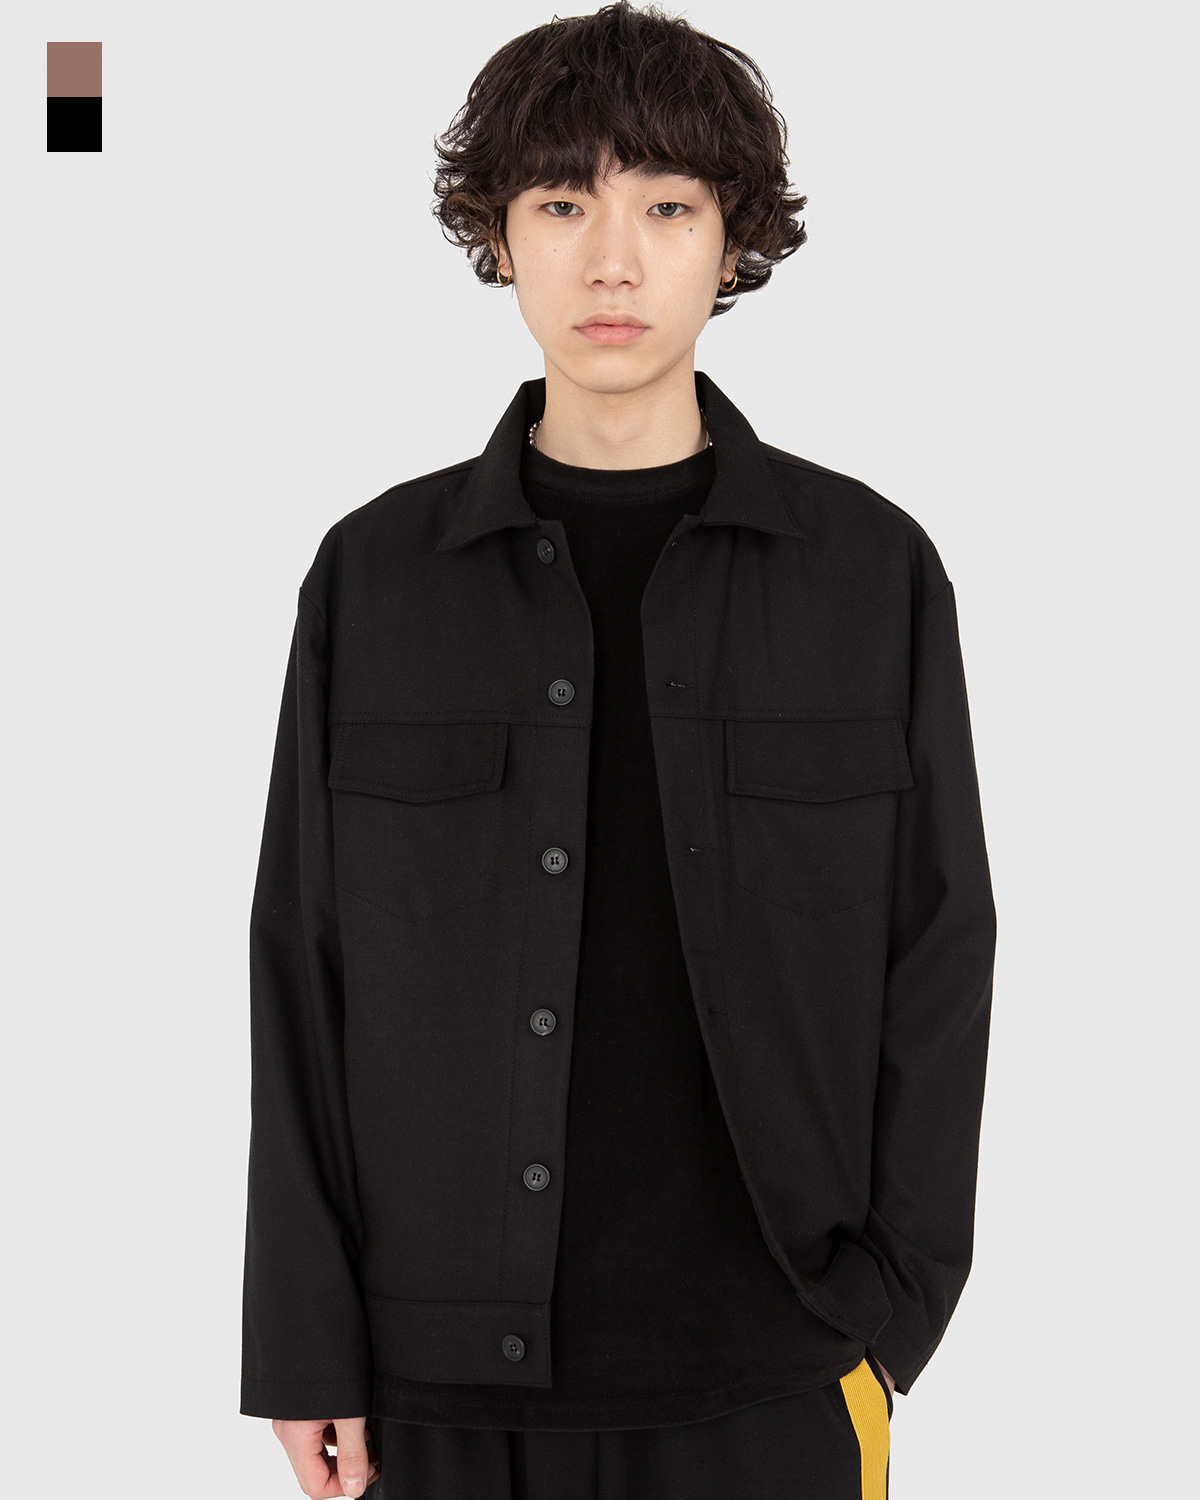 raucohouse-RONY CALM TRUCKER JACKET - RAUCO HOUSE♡韓國男裝外套